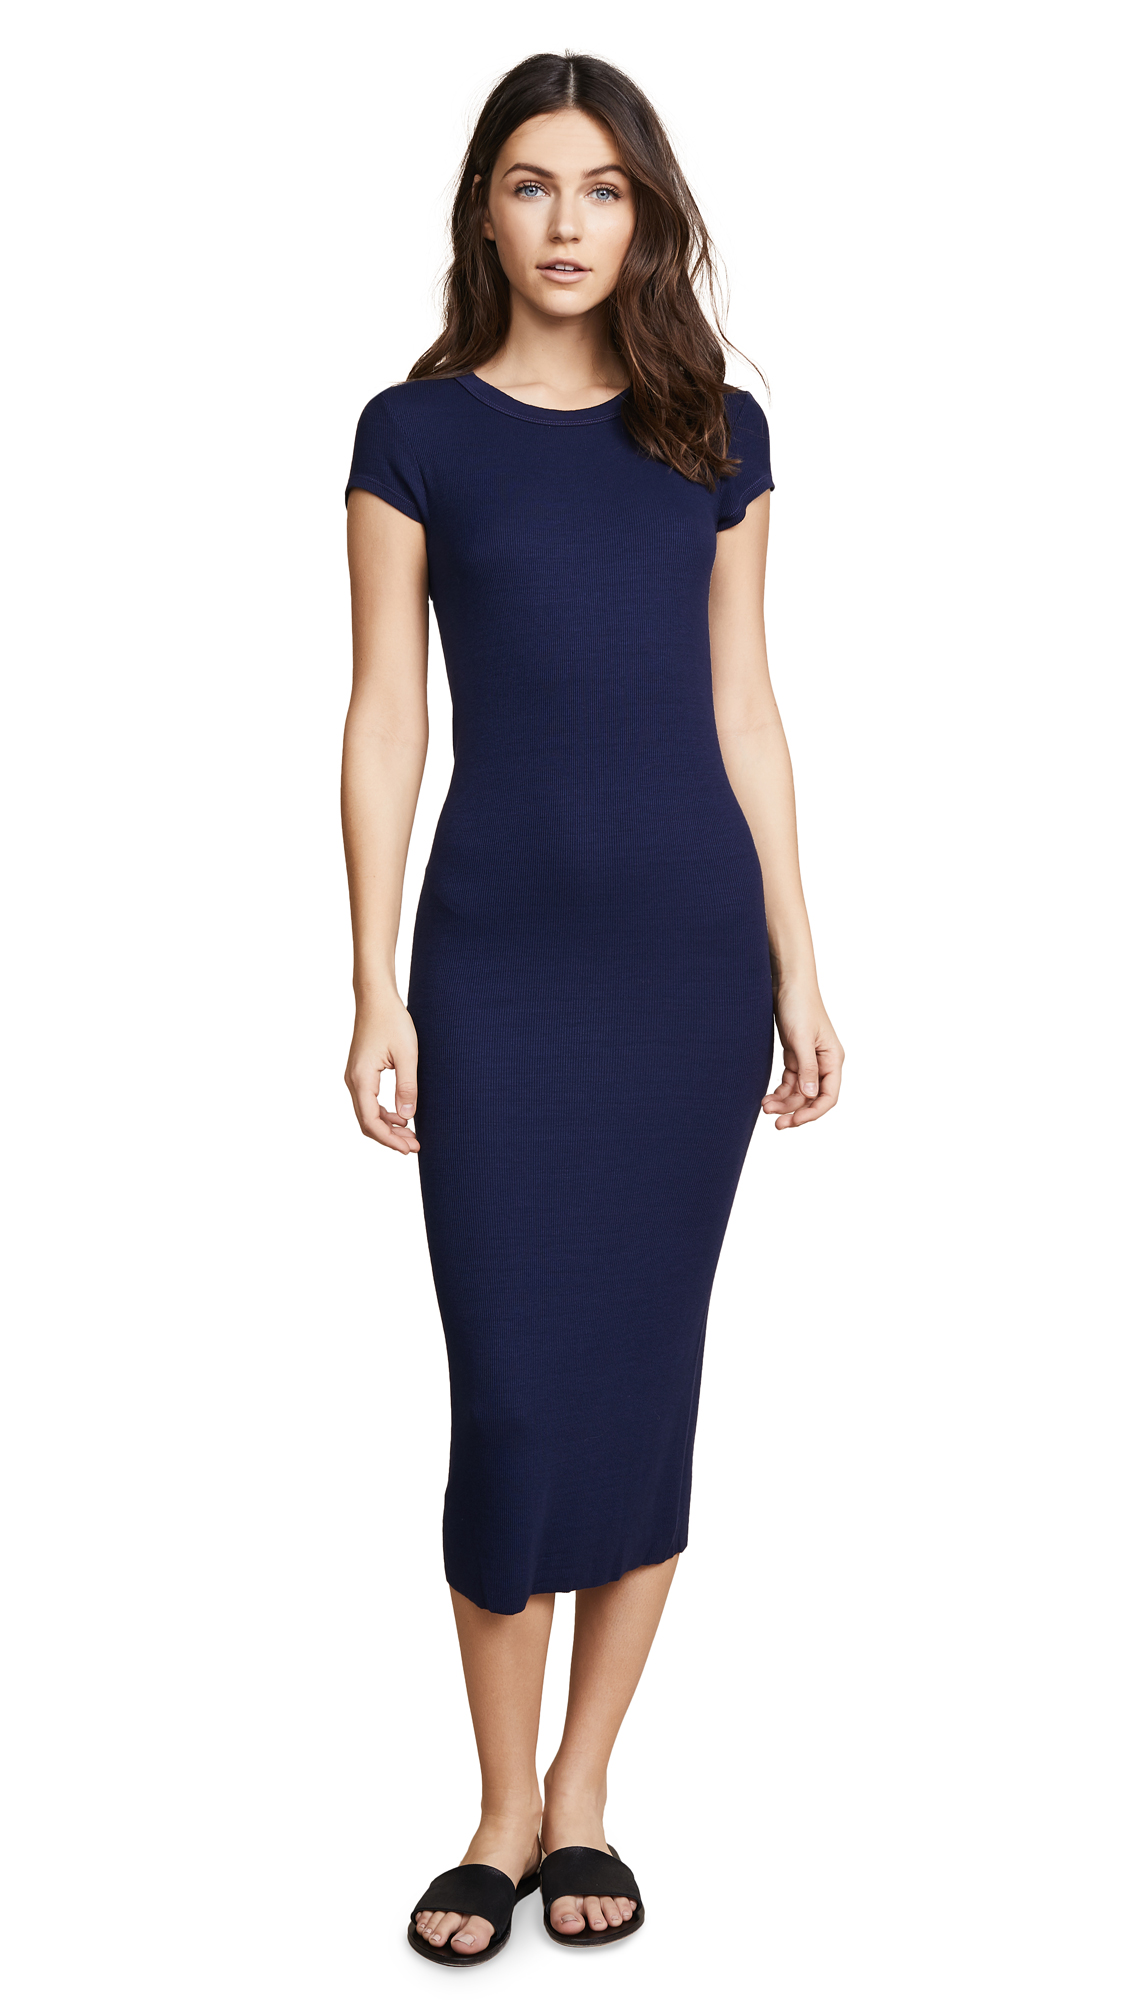 Enza Costa Ribbed Cap Sleeve Dress - Atlantic